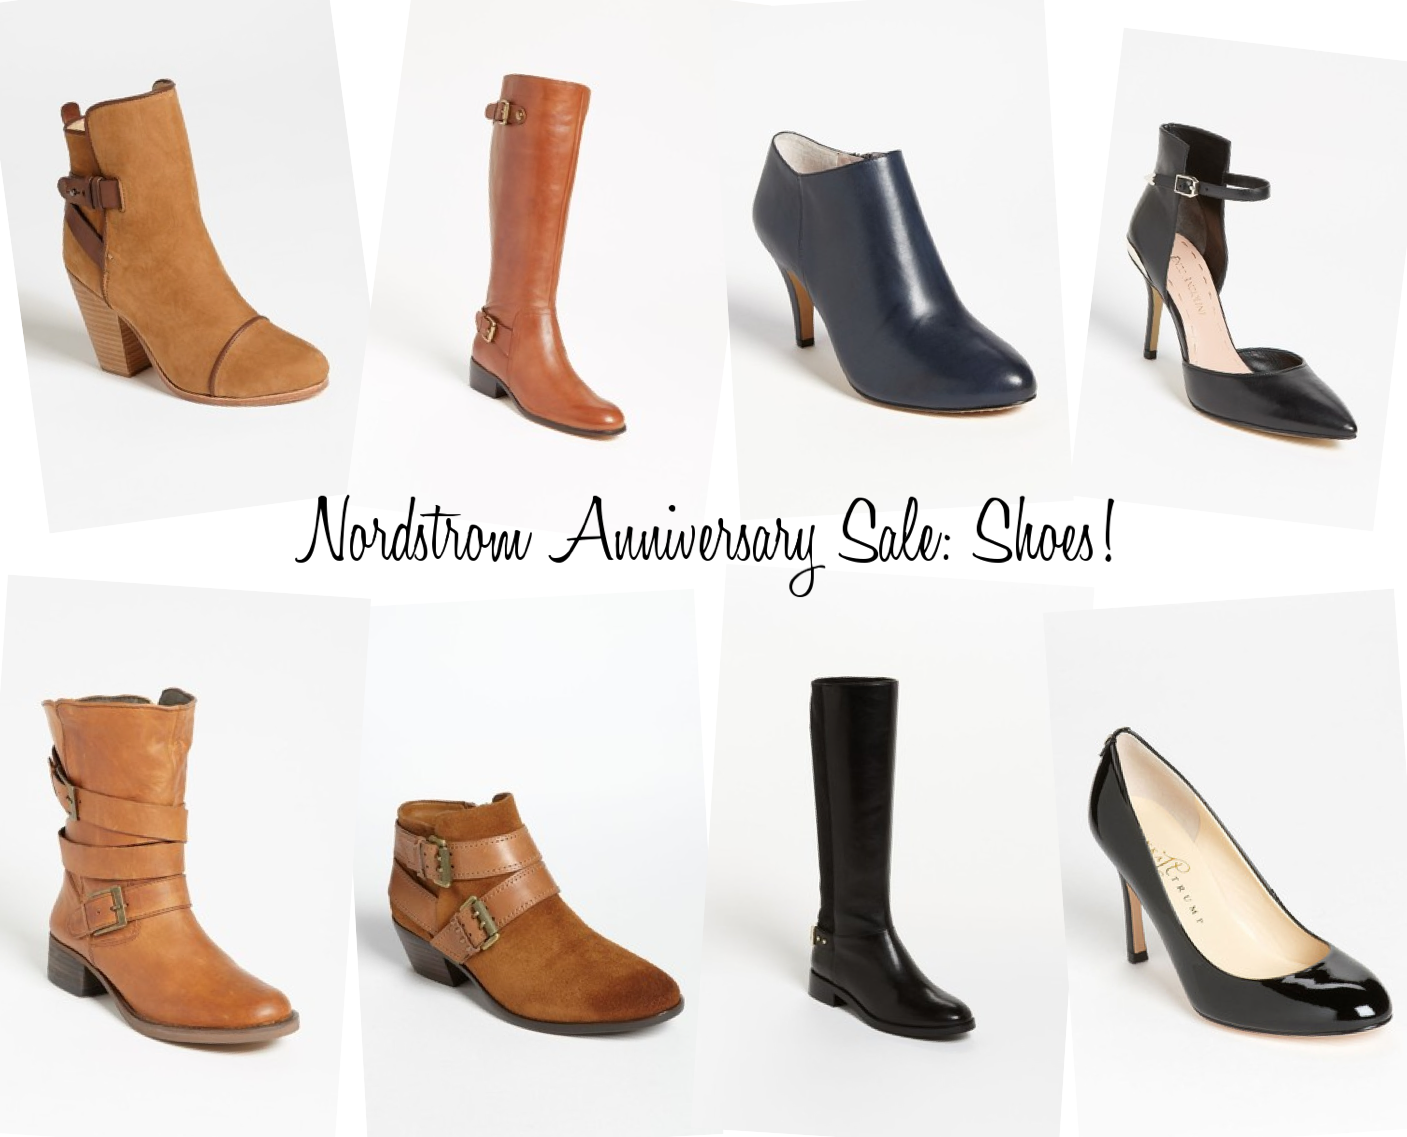 Nordstrom Anniversary Sale: Part One!